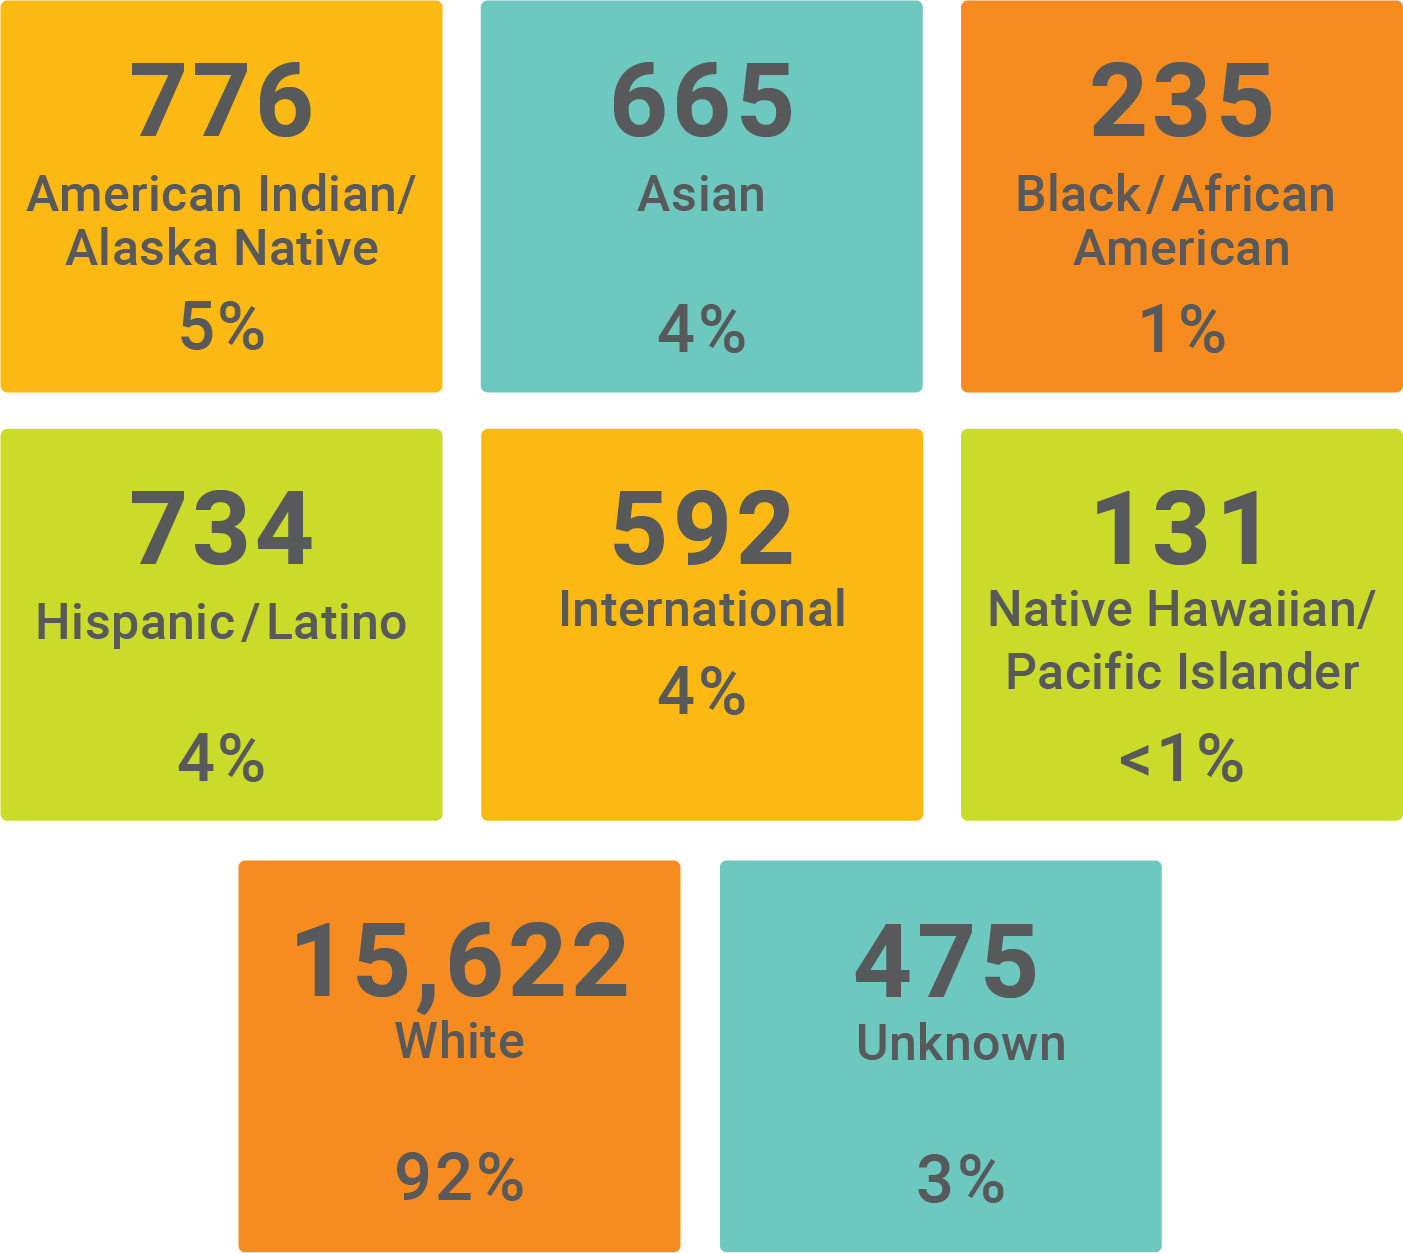 Graphic showing the demographics of students by race and ethnicity. White with 15,622 at 92%, American Indian/Alaska Native with 776 at 5%, Asian with 665 at 4%, Black/African American with 235 at 1%, Hispanic/Latino with 734 at 4%, International with 592 at 4%, Native Hawaiian/Pacific Islander with 131 at less than 1%, and Unknown with 475 at 3%.